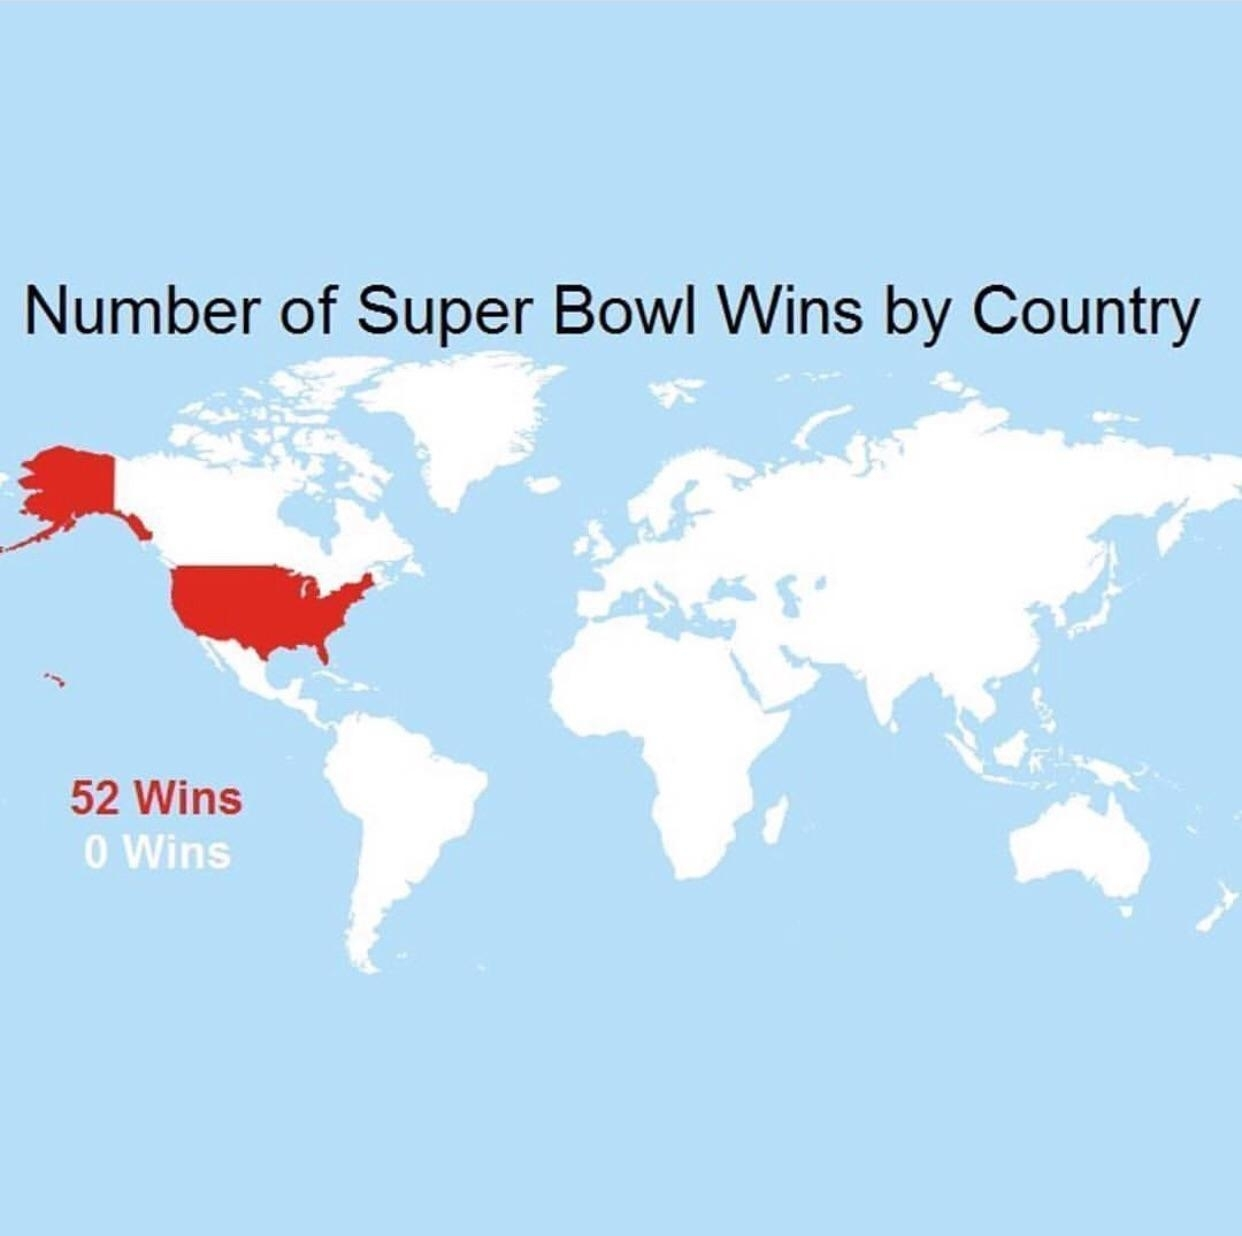 Number Of Super Bowl Winscountry : Mapporncirclejerk intended for Map Of Super Bowl Wins By Country